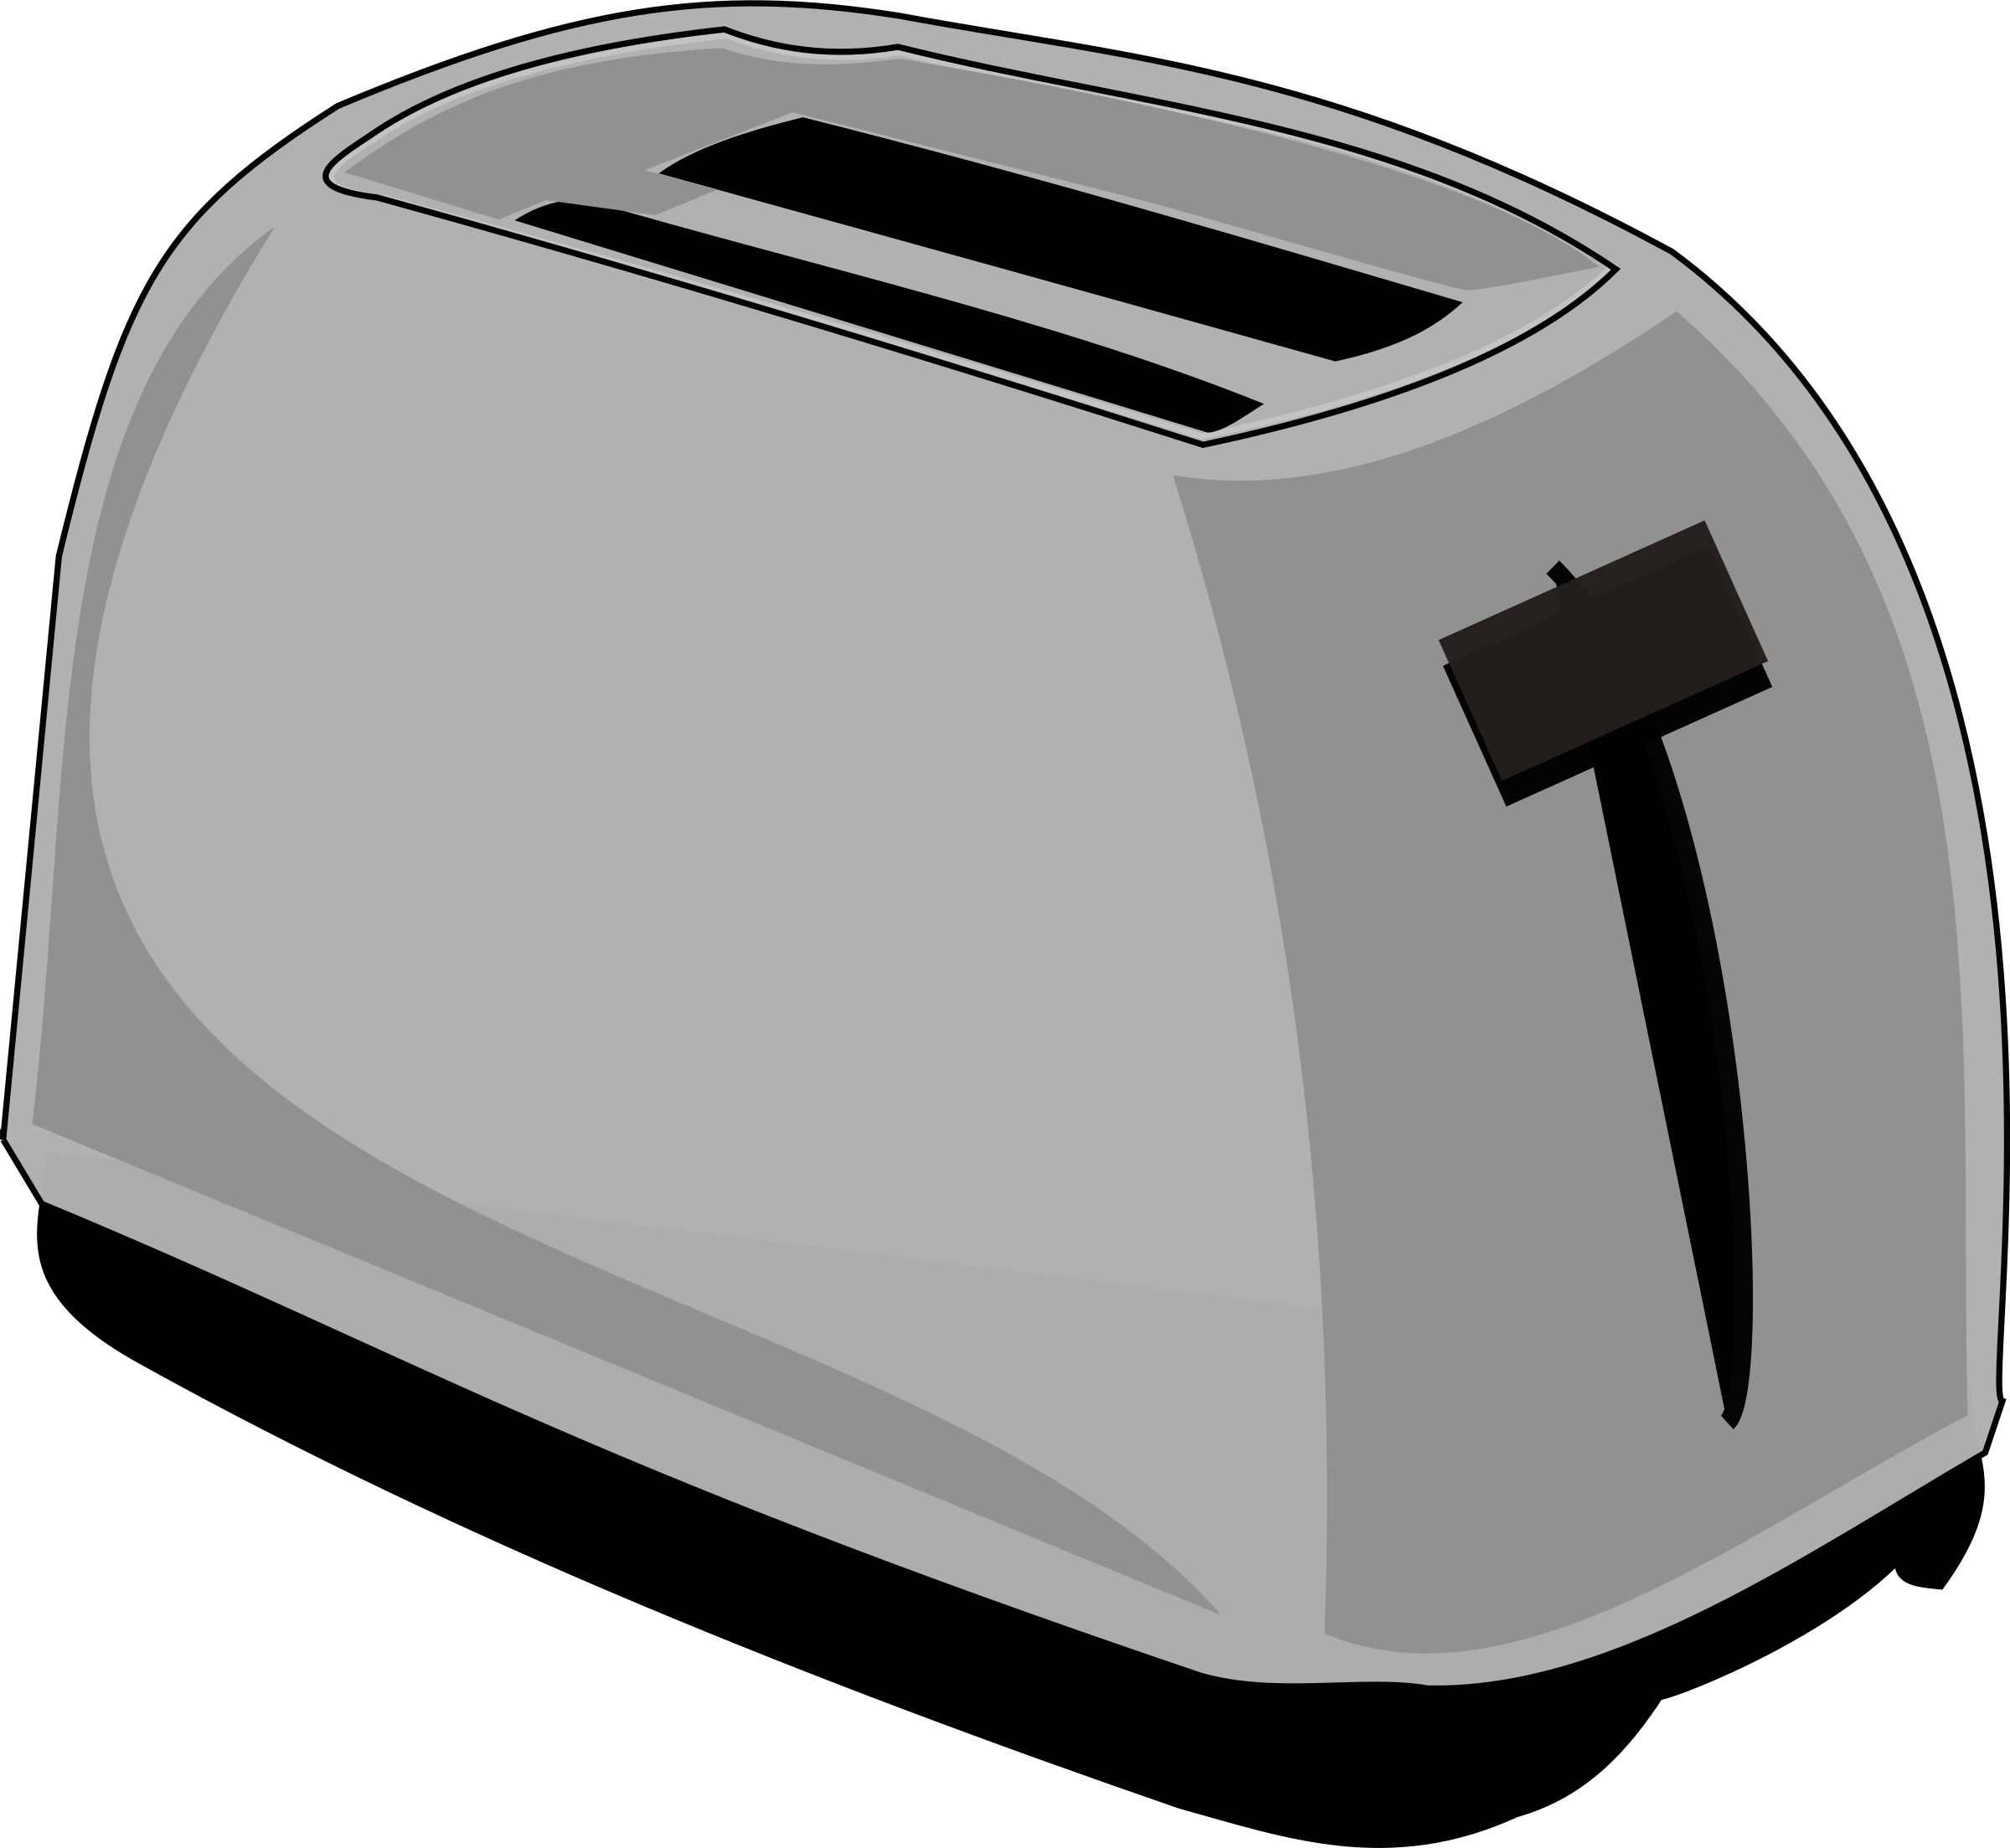 Toaster clipart generic. Png images free download